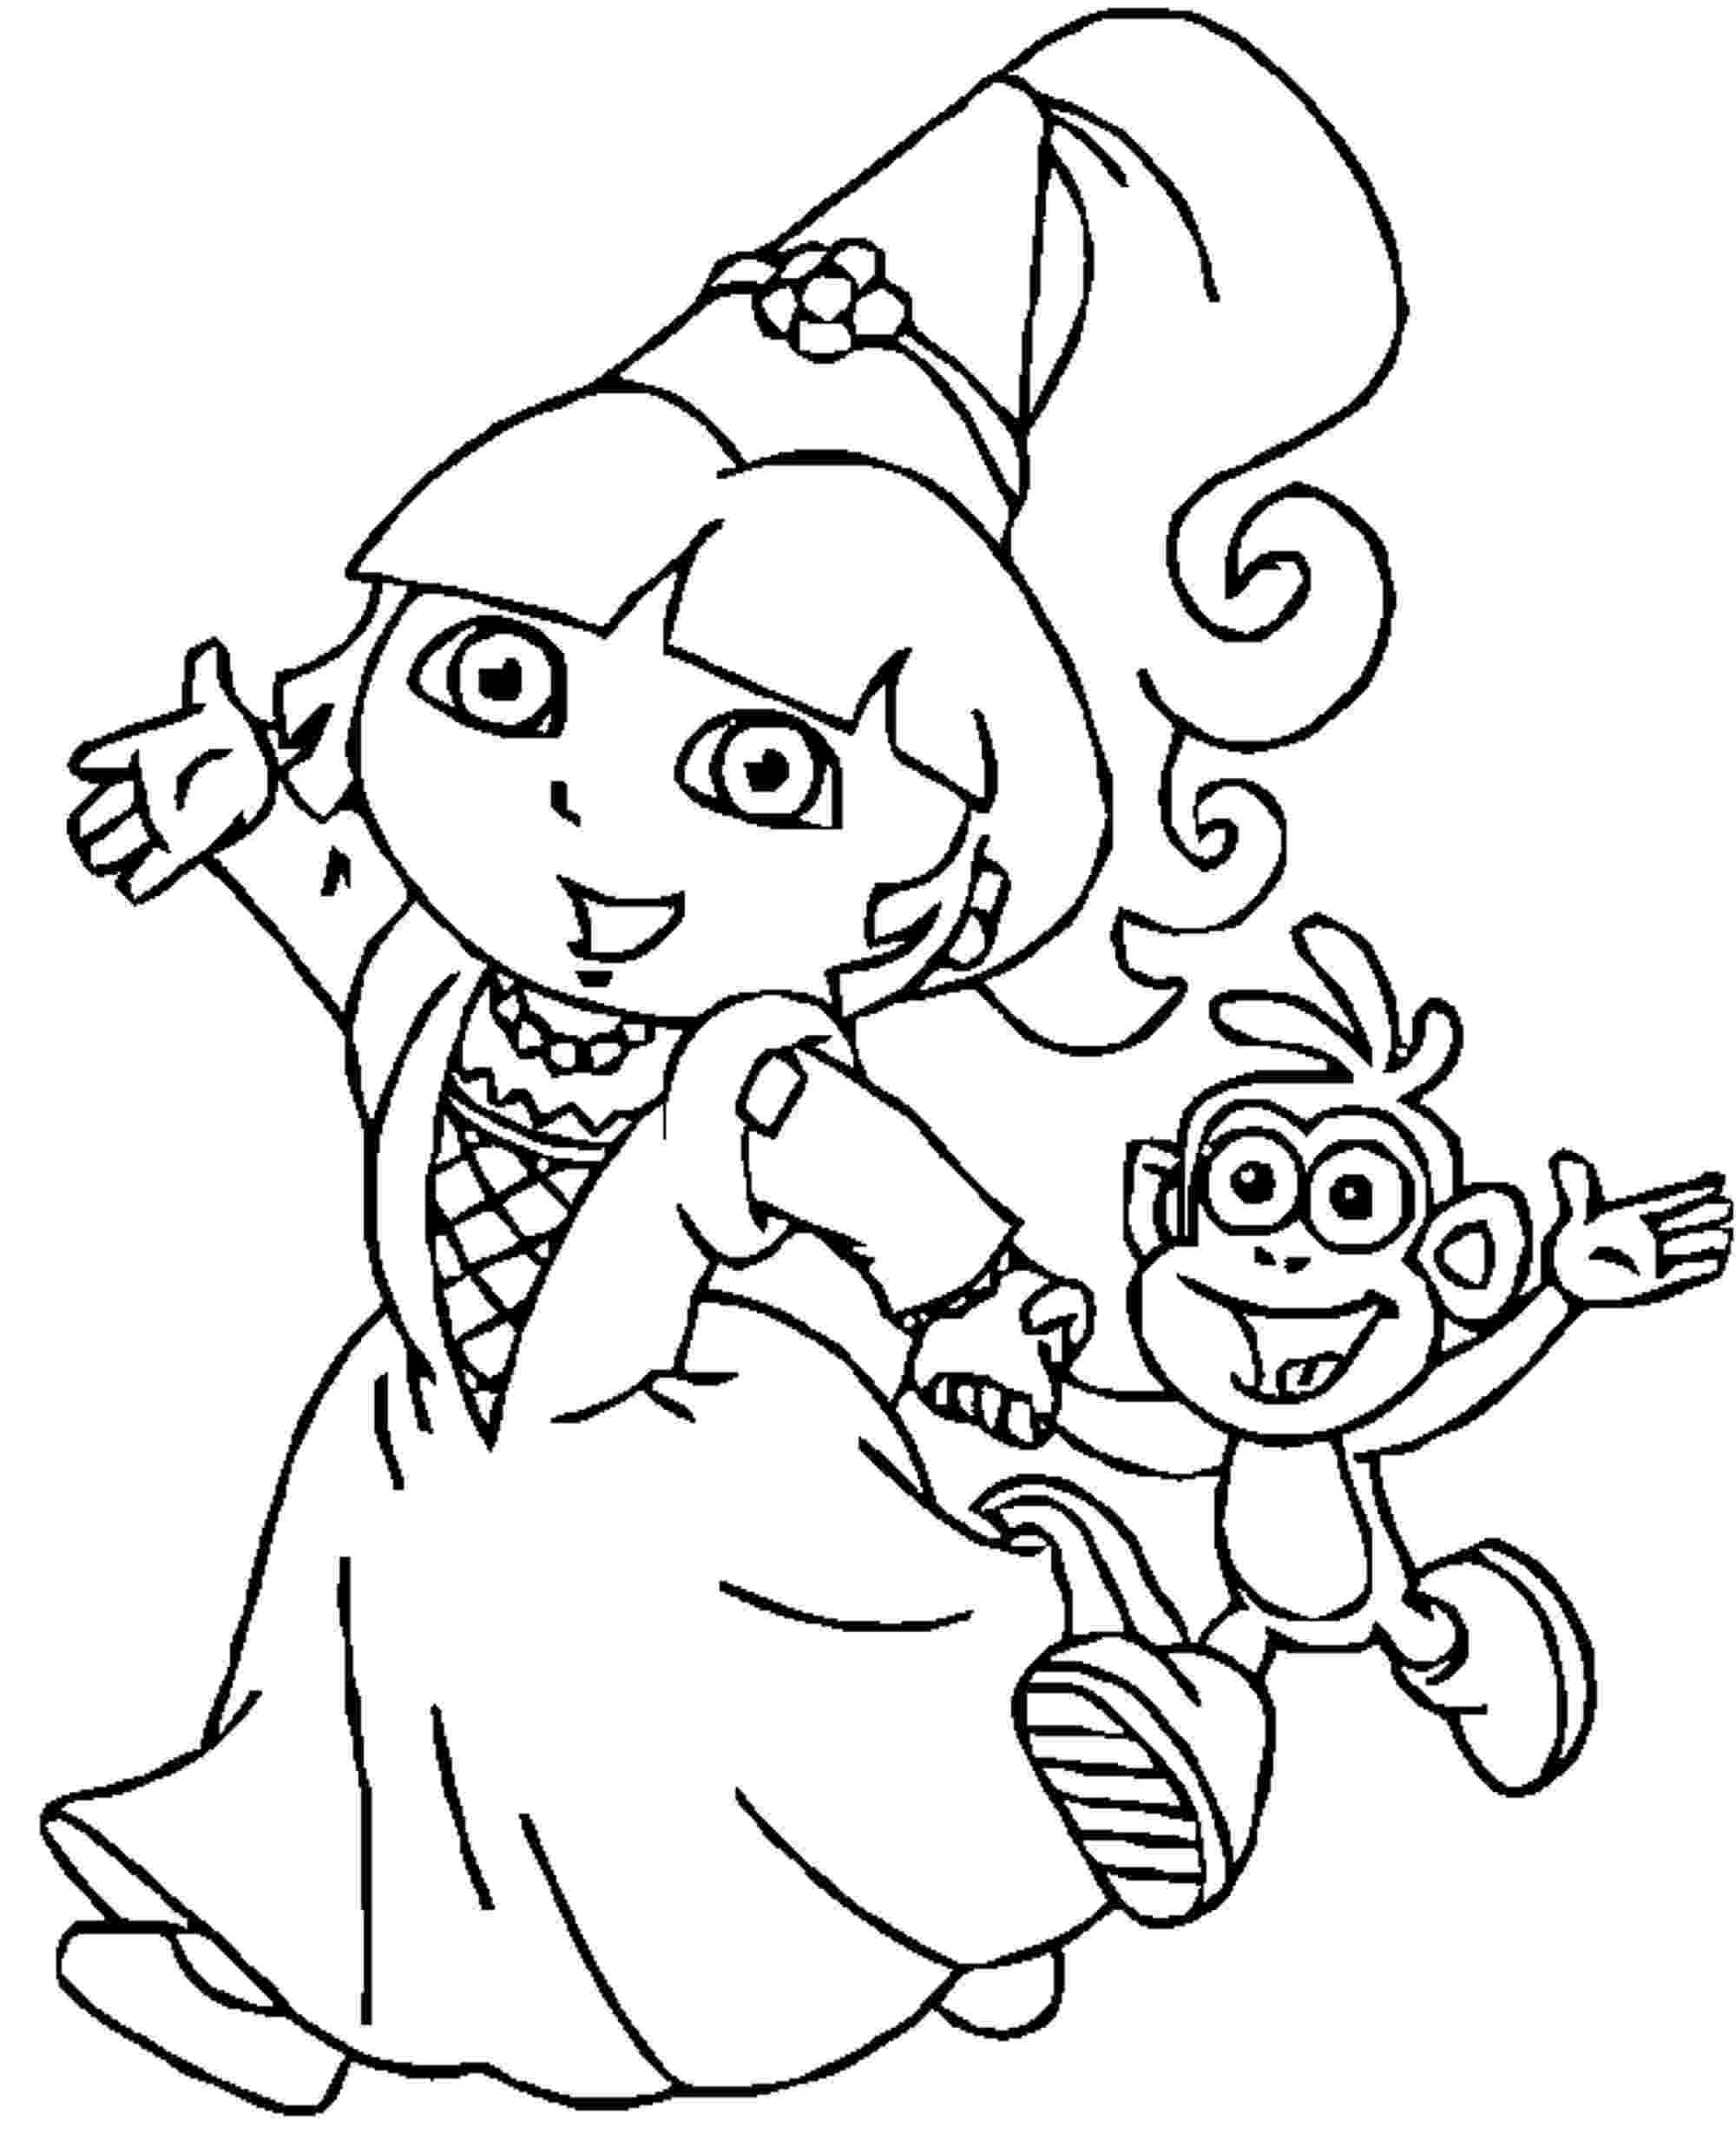 dora printing pages coloring dora coloring pages pages dora printing